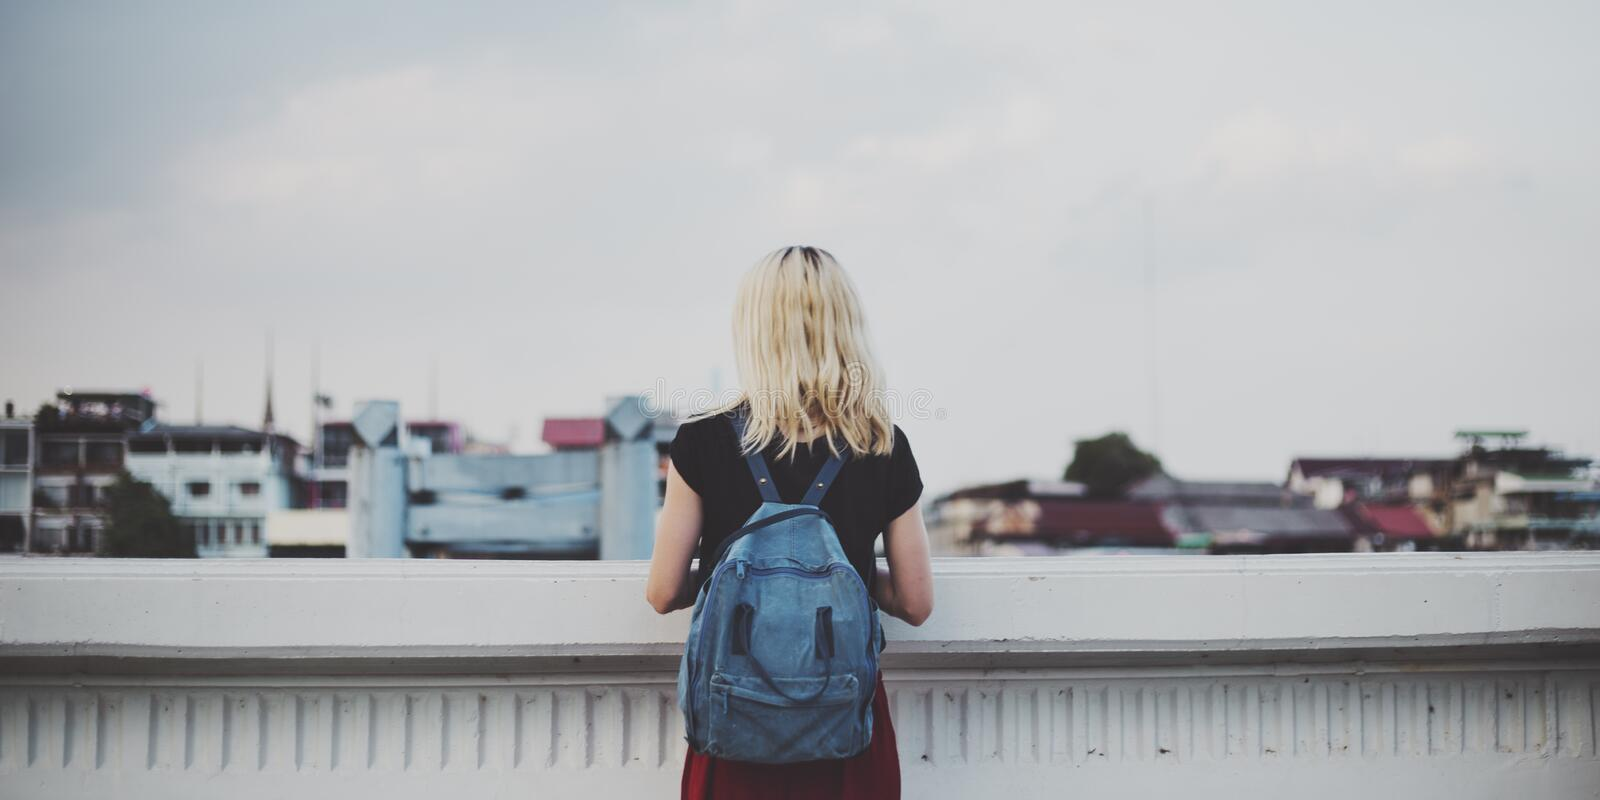 Woman Caucasian Traveler Explore Sky Concept royalty free stock photo